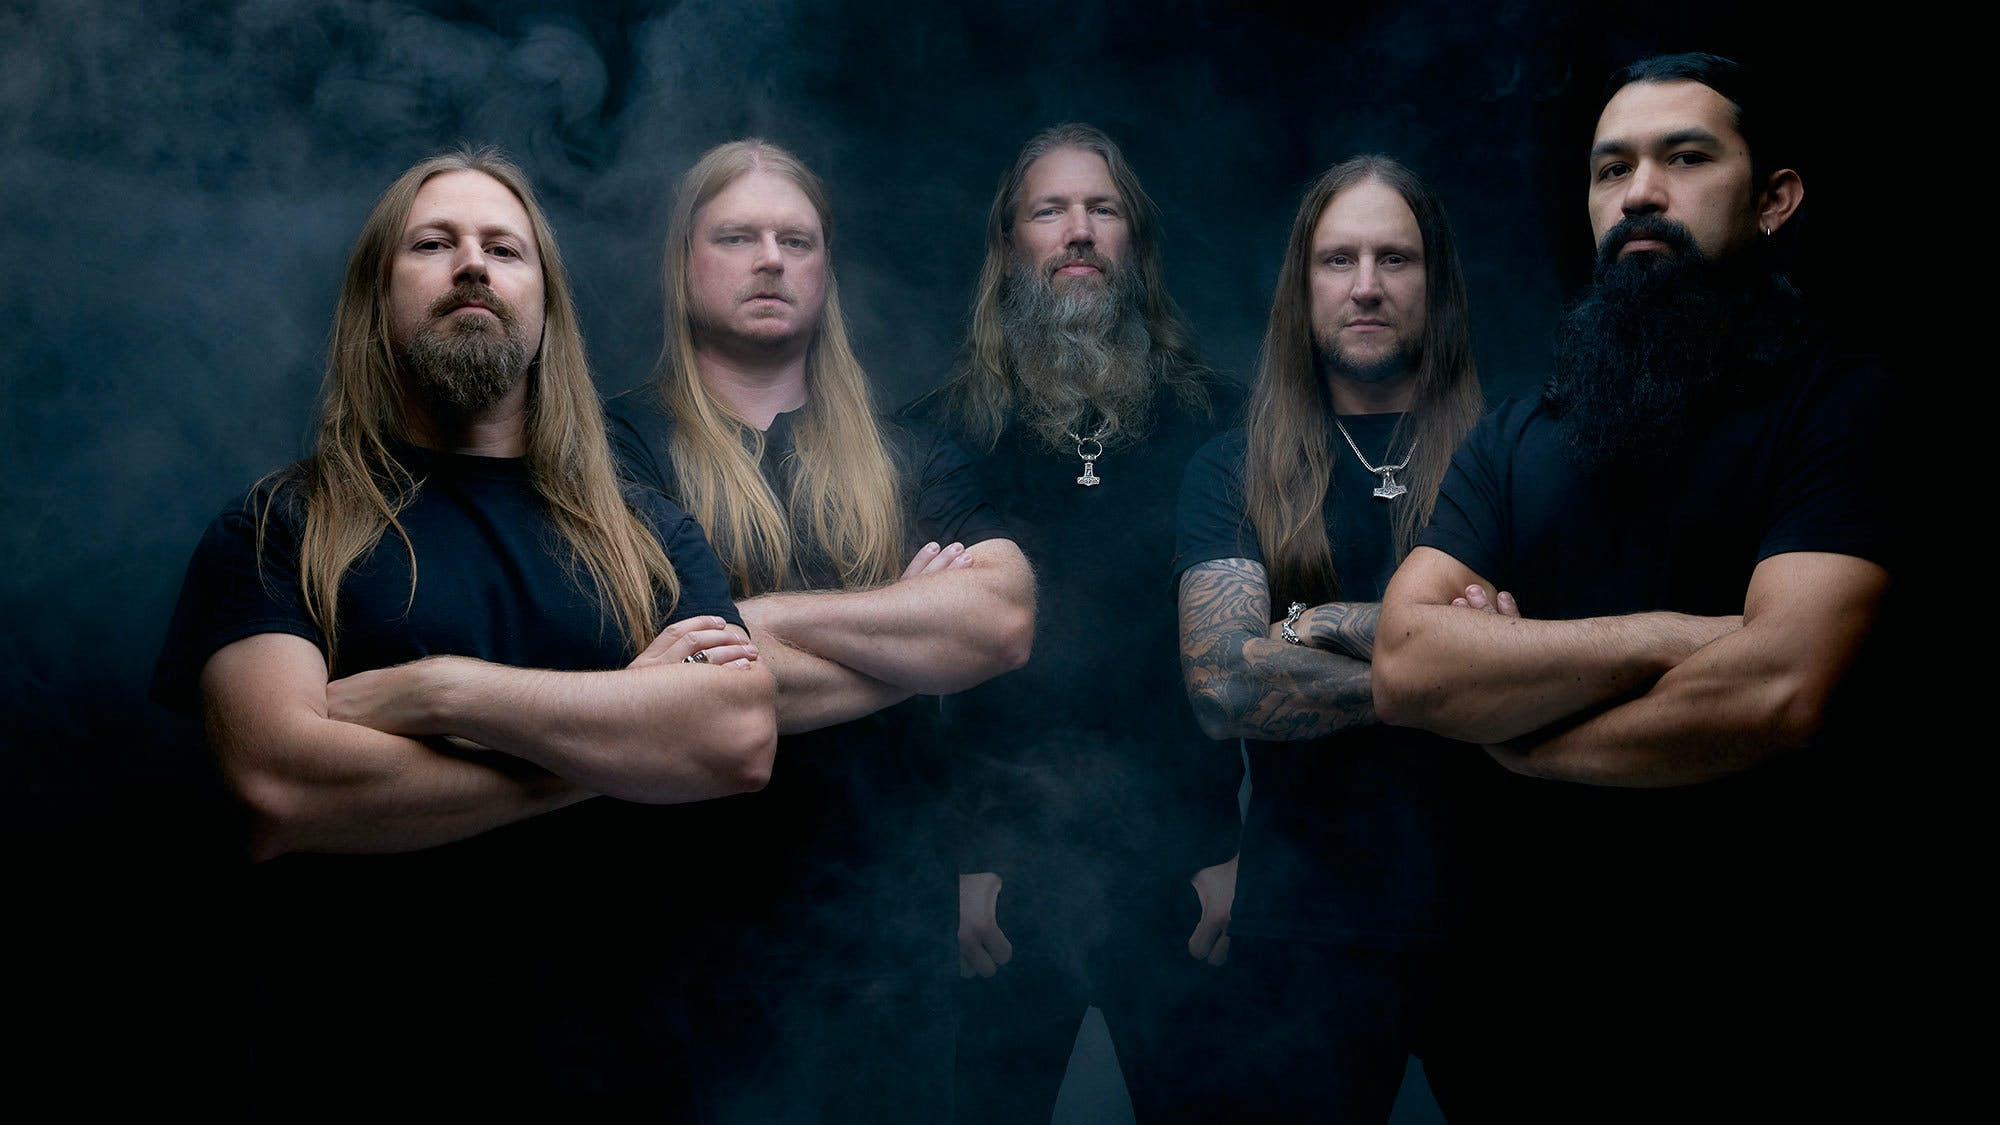 Amon Amarth, Arch Enemy, and At The Gates Announce North American Tour